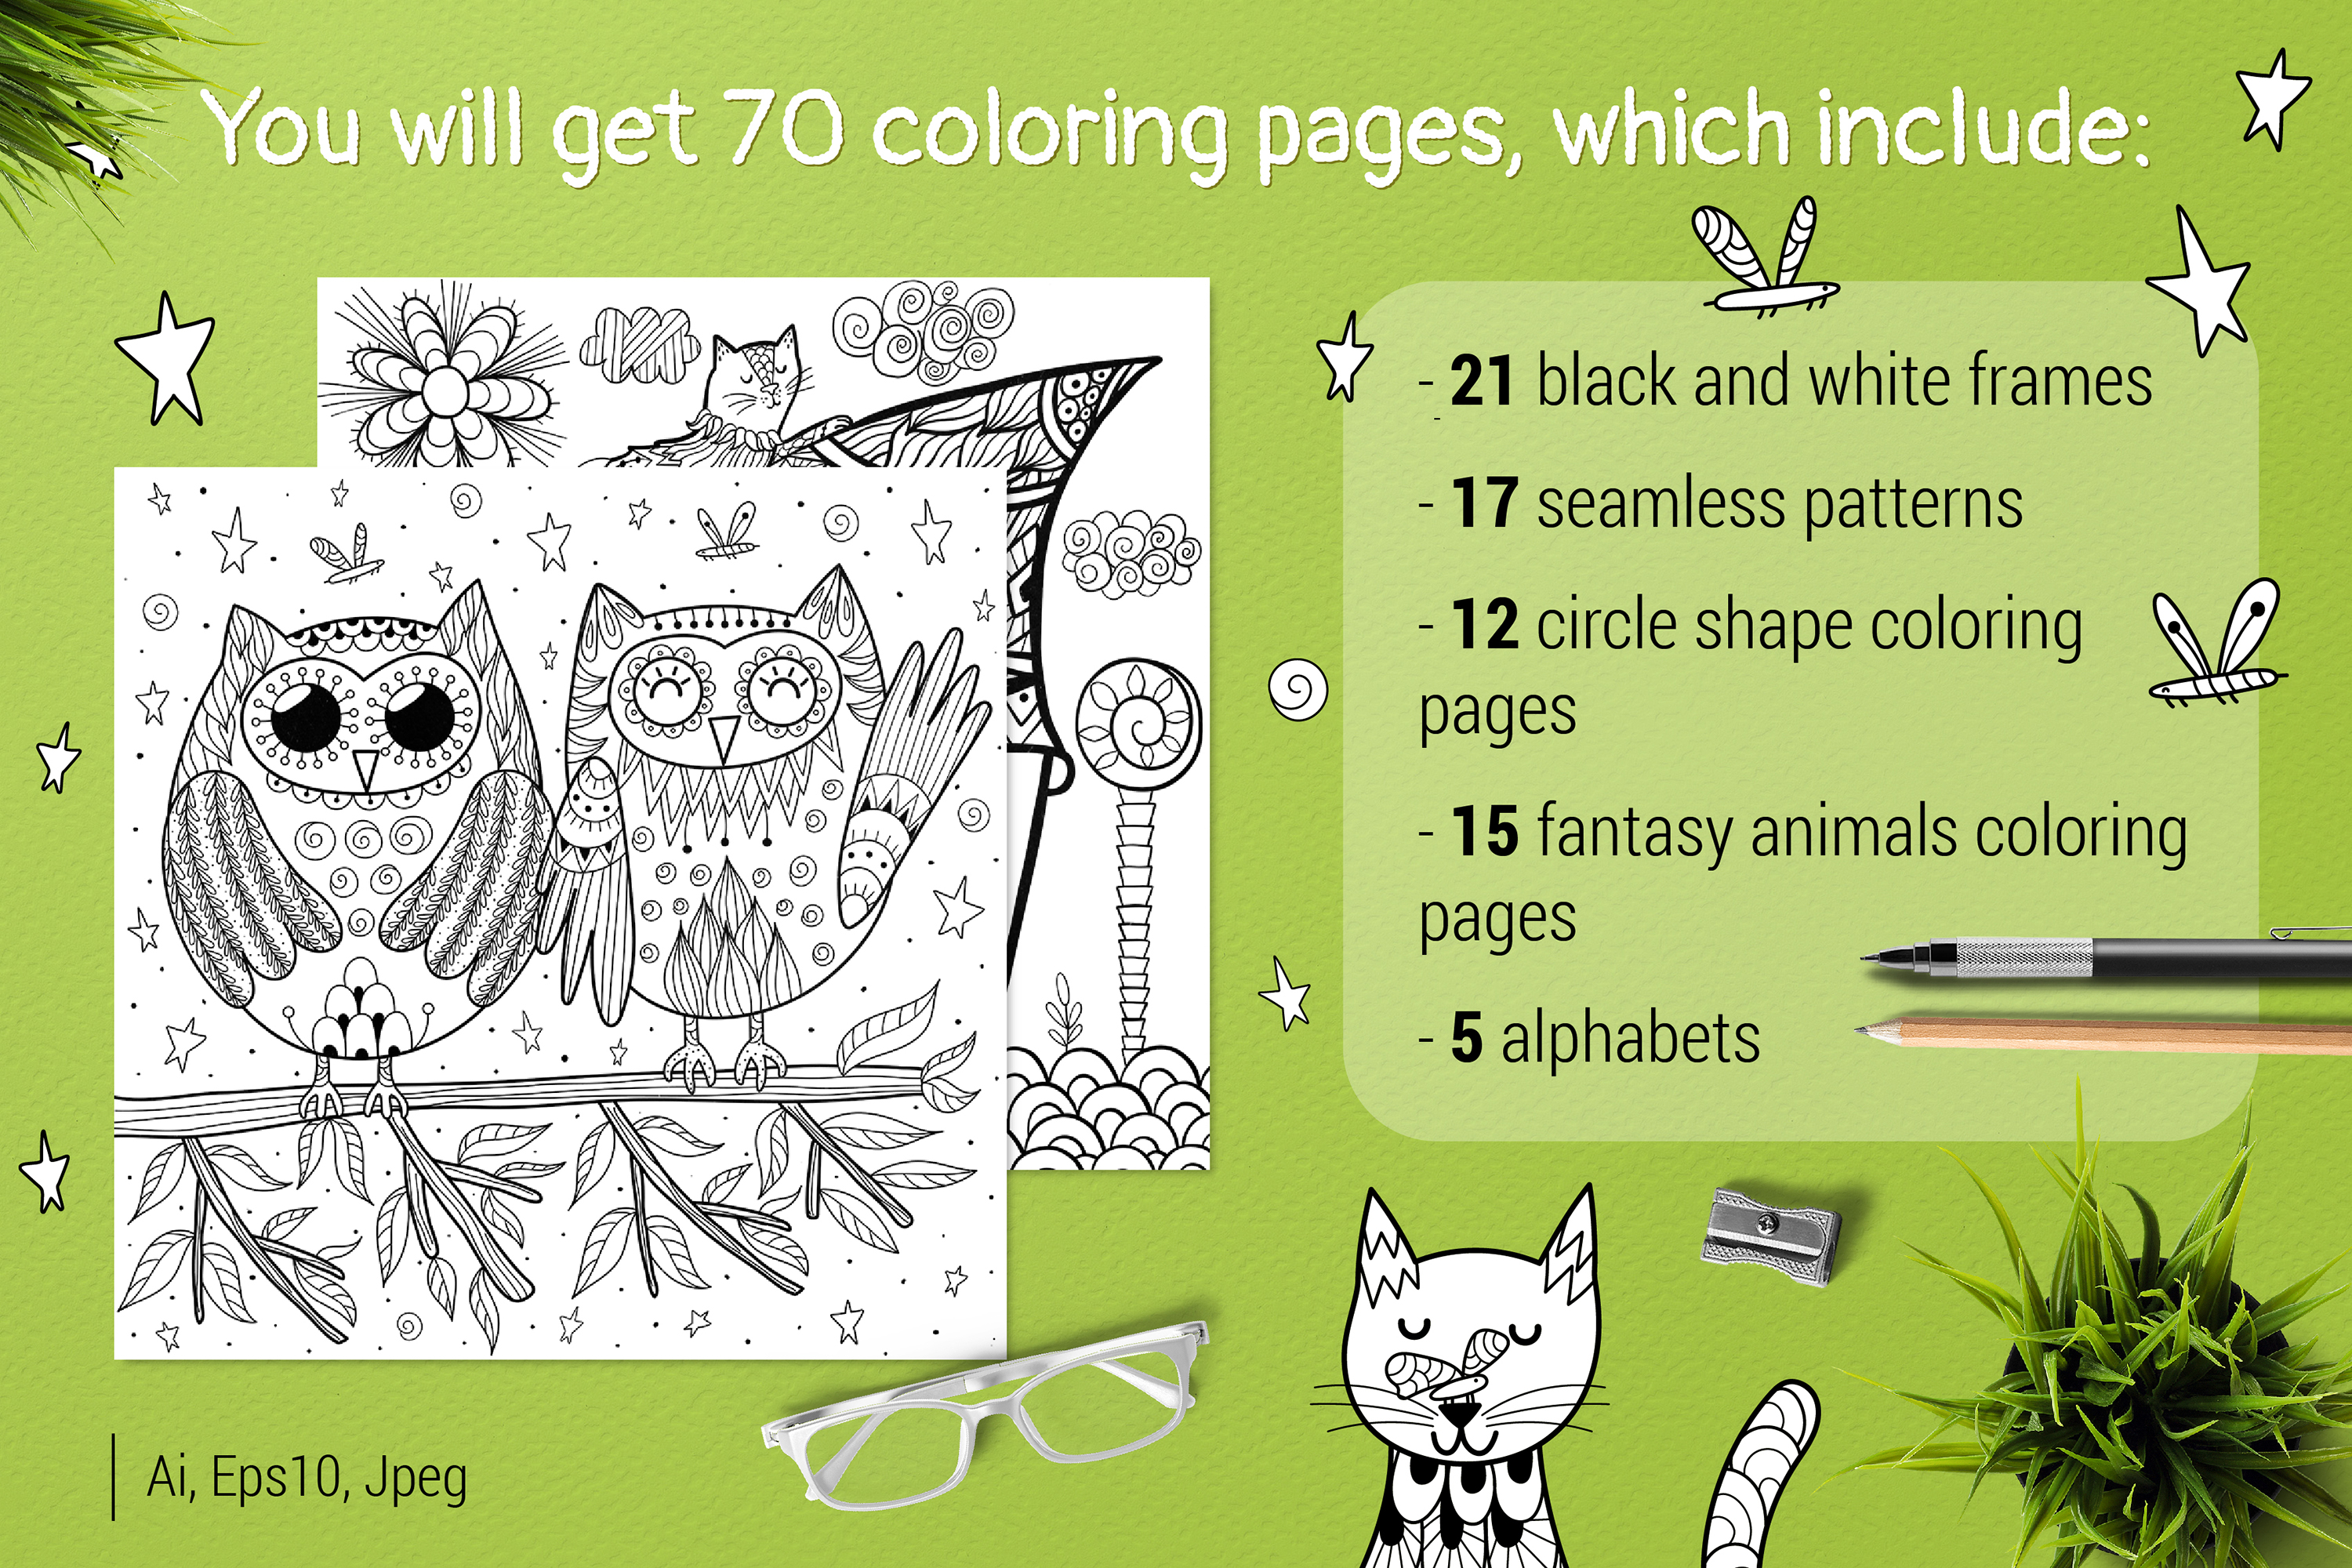 70 Coloring Pages Amazing Animals example image 3